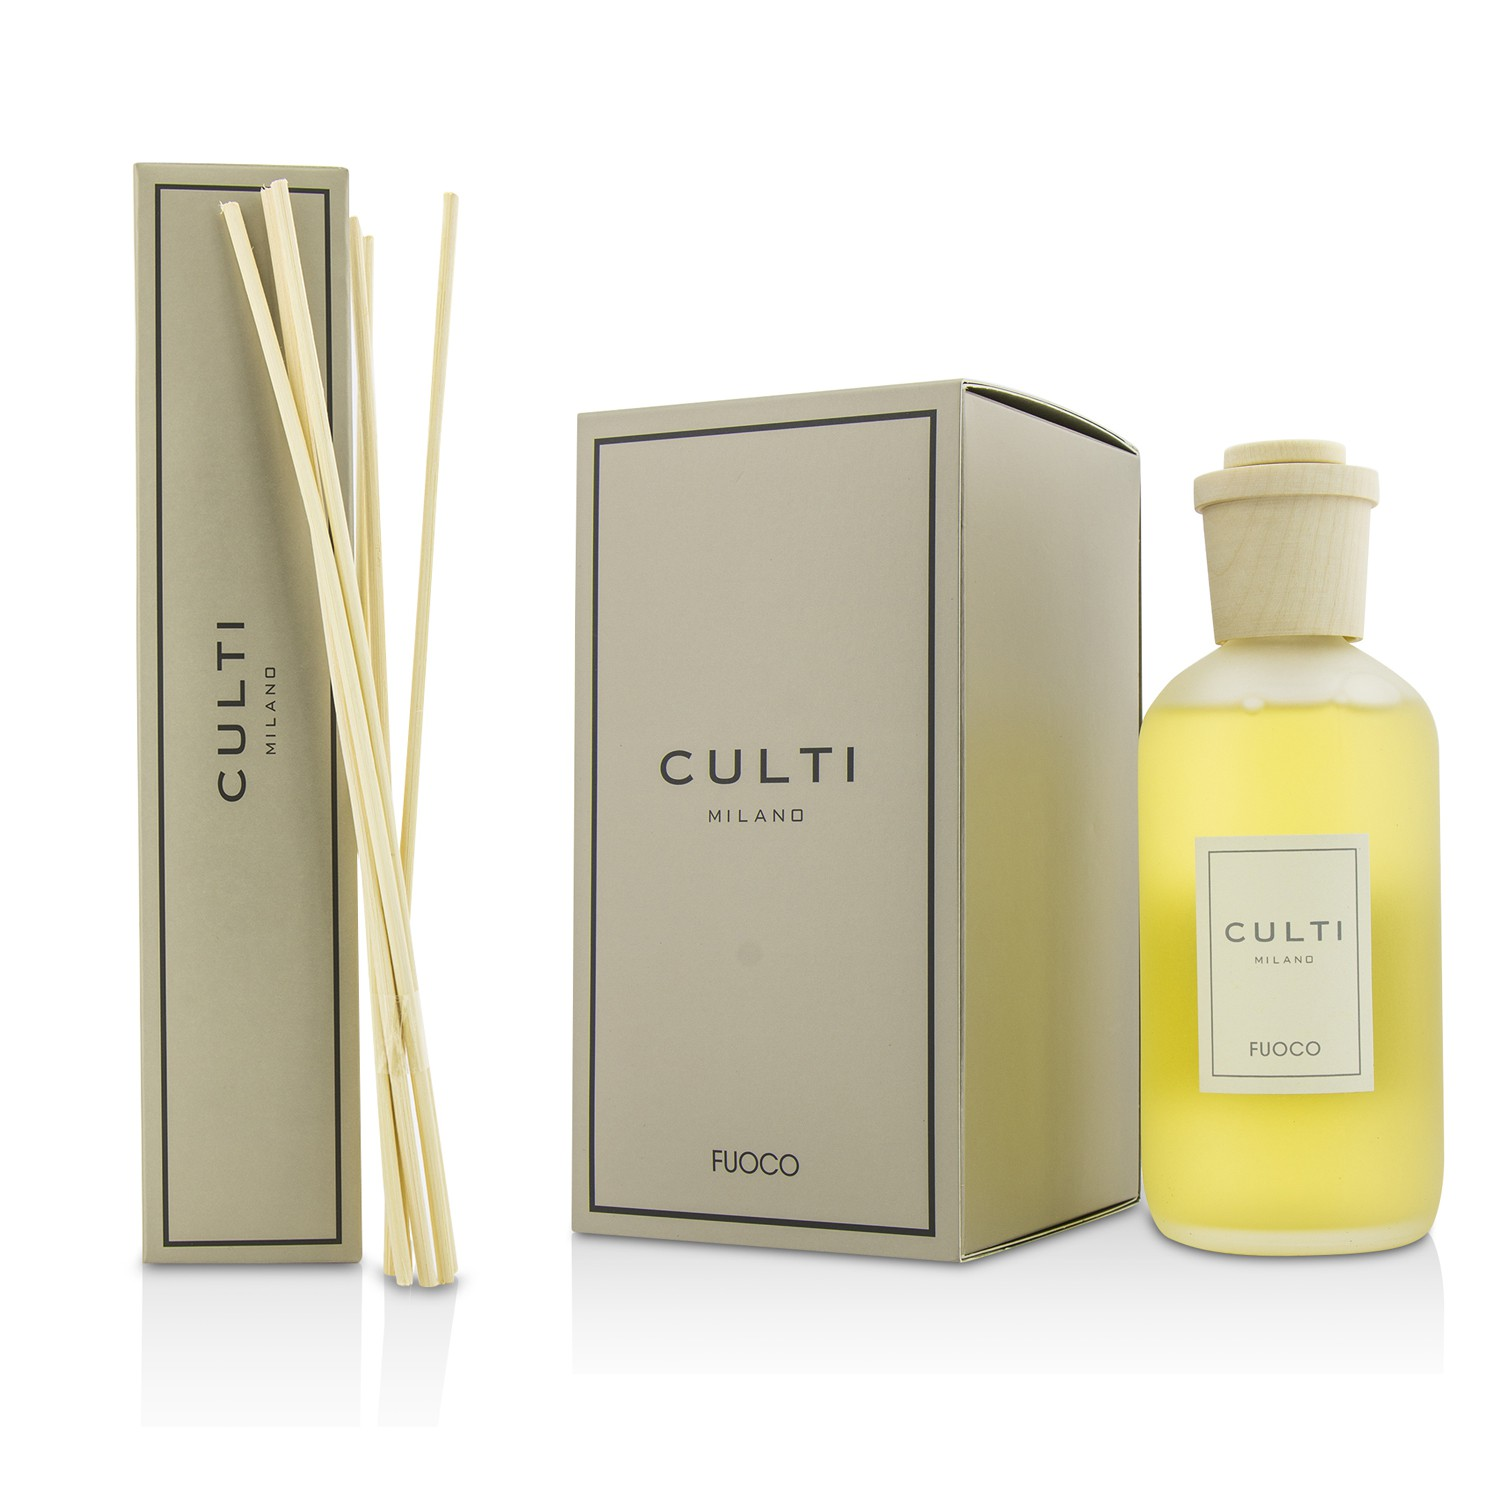 Culti Stile Room Diffuser Fuoco (New Packaging)/8 33oz